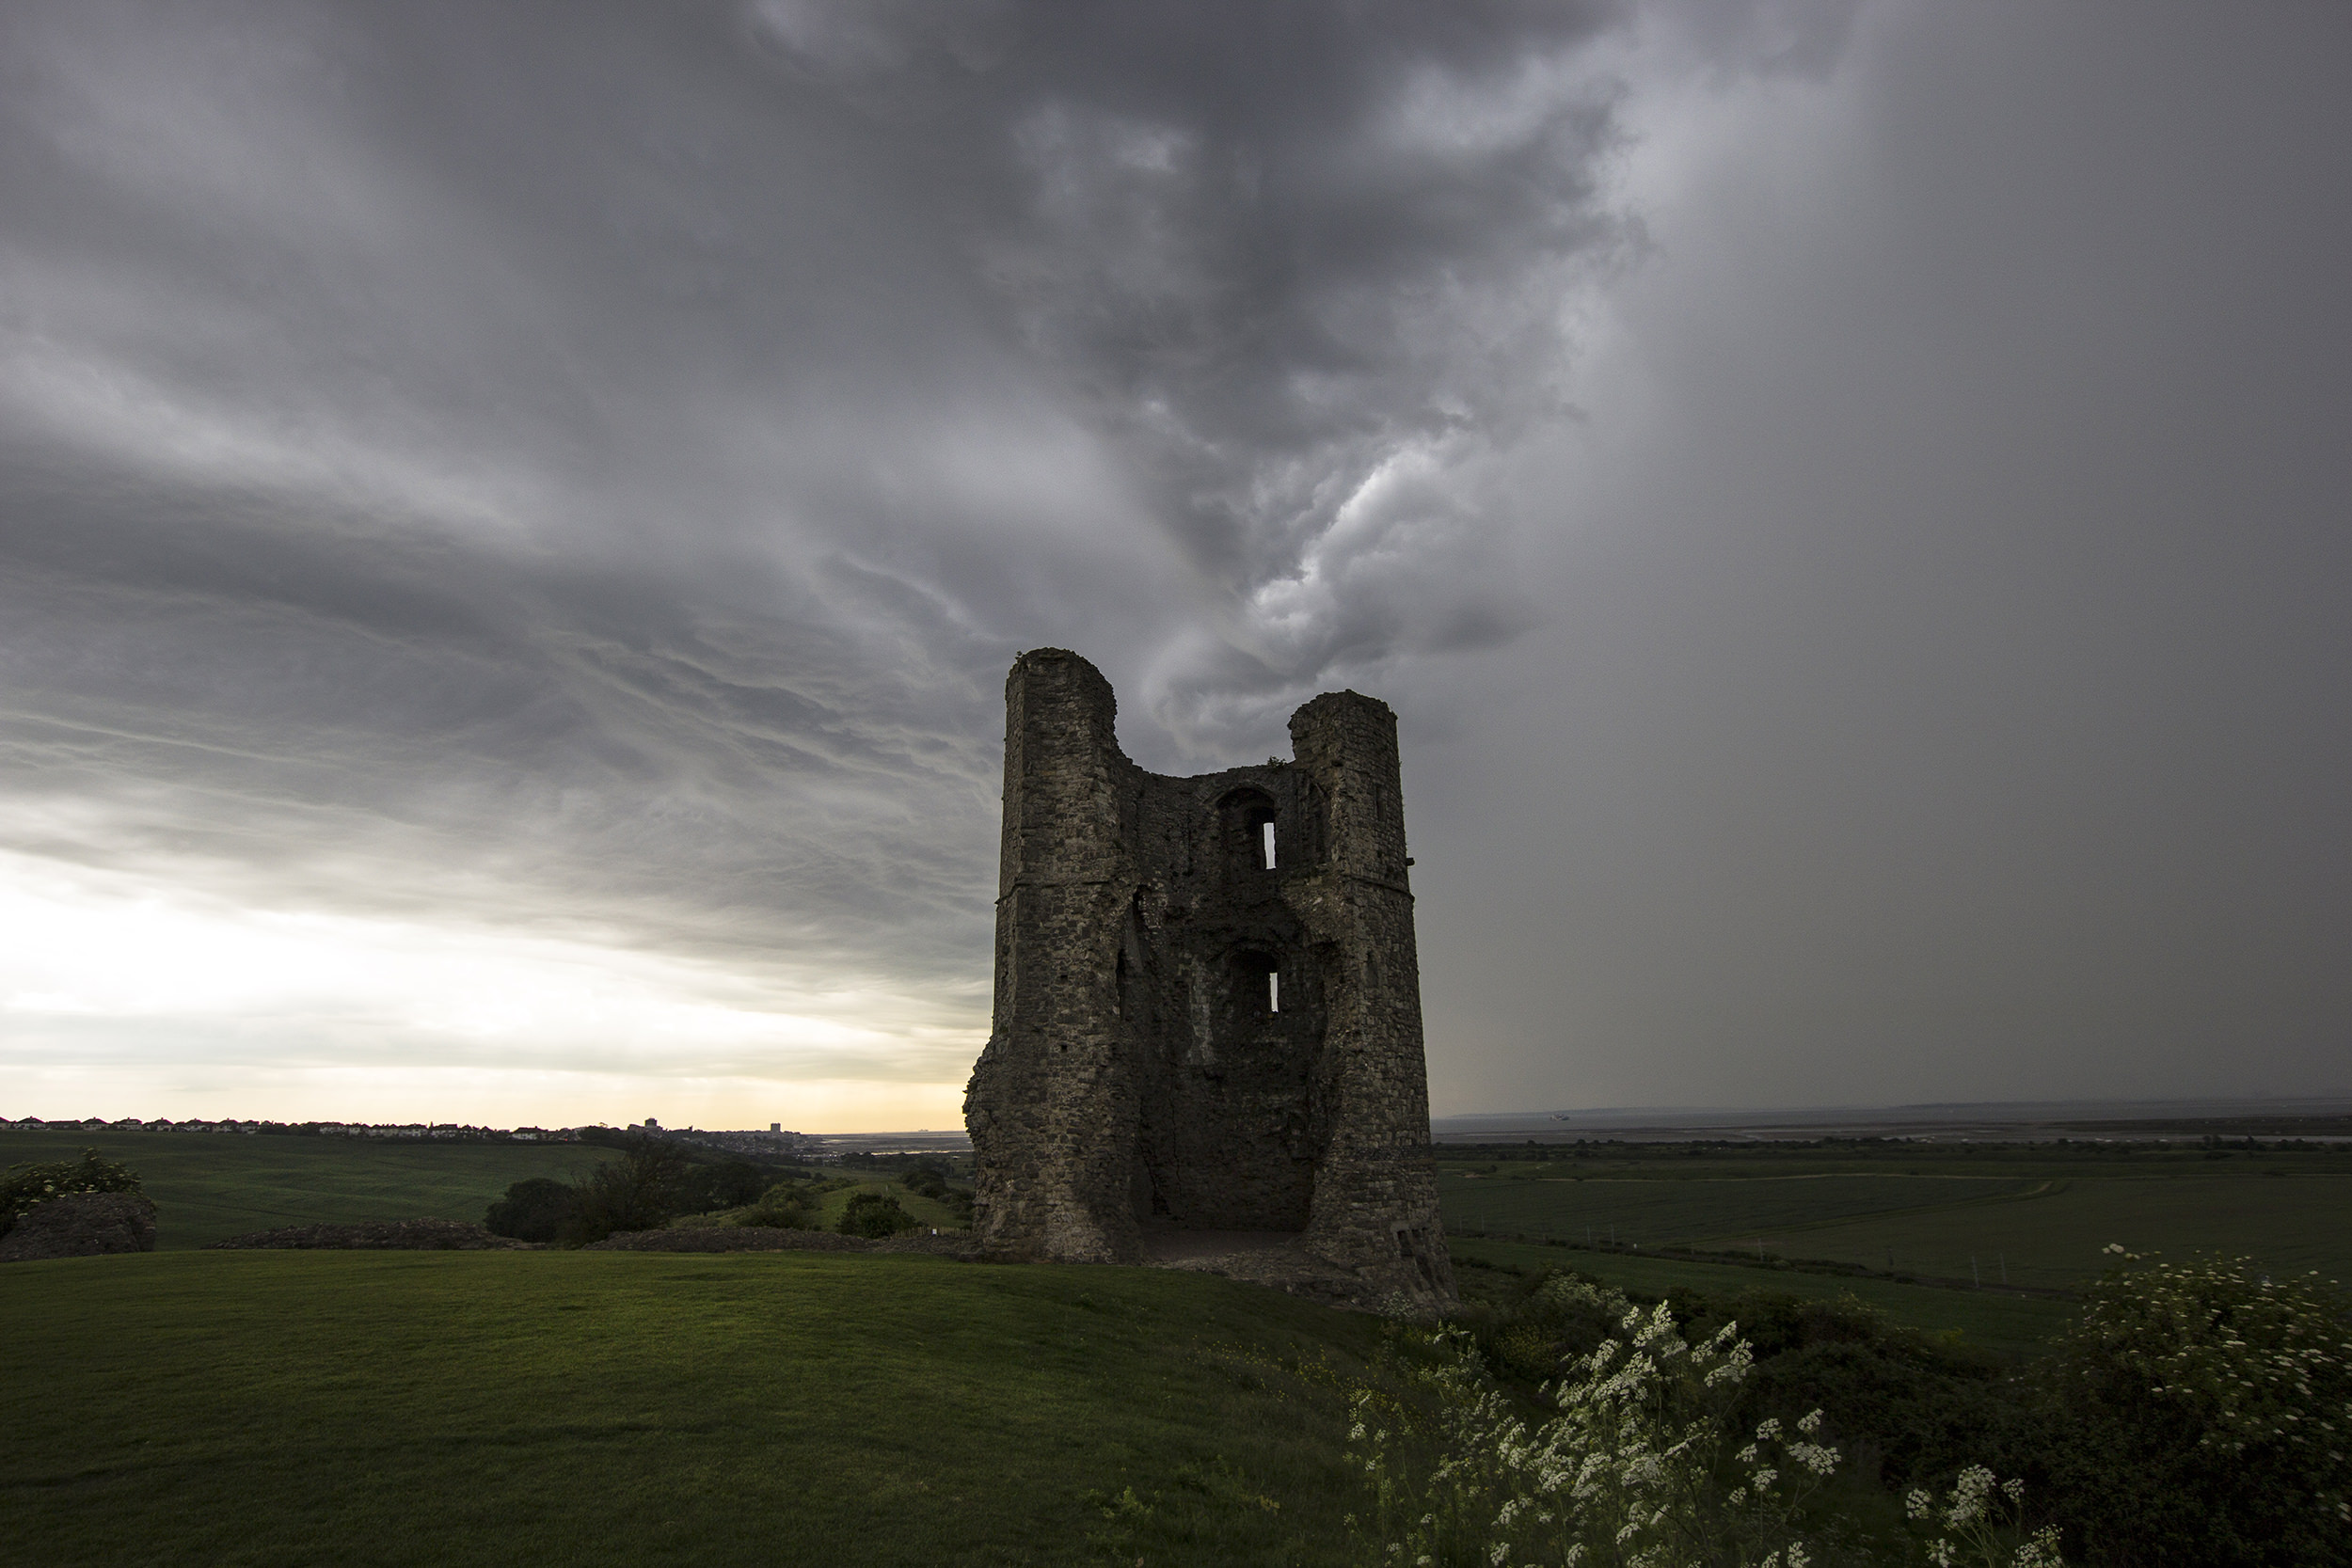 Hadleigh Castle - tower no.3